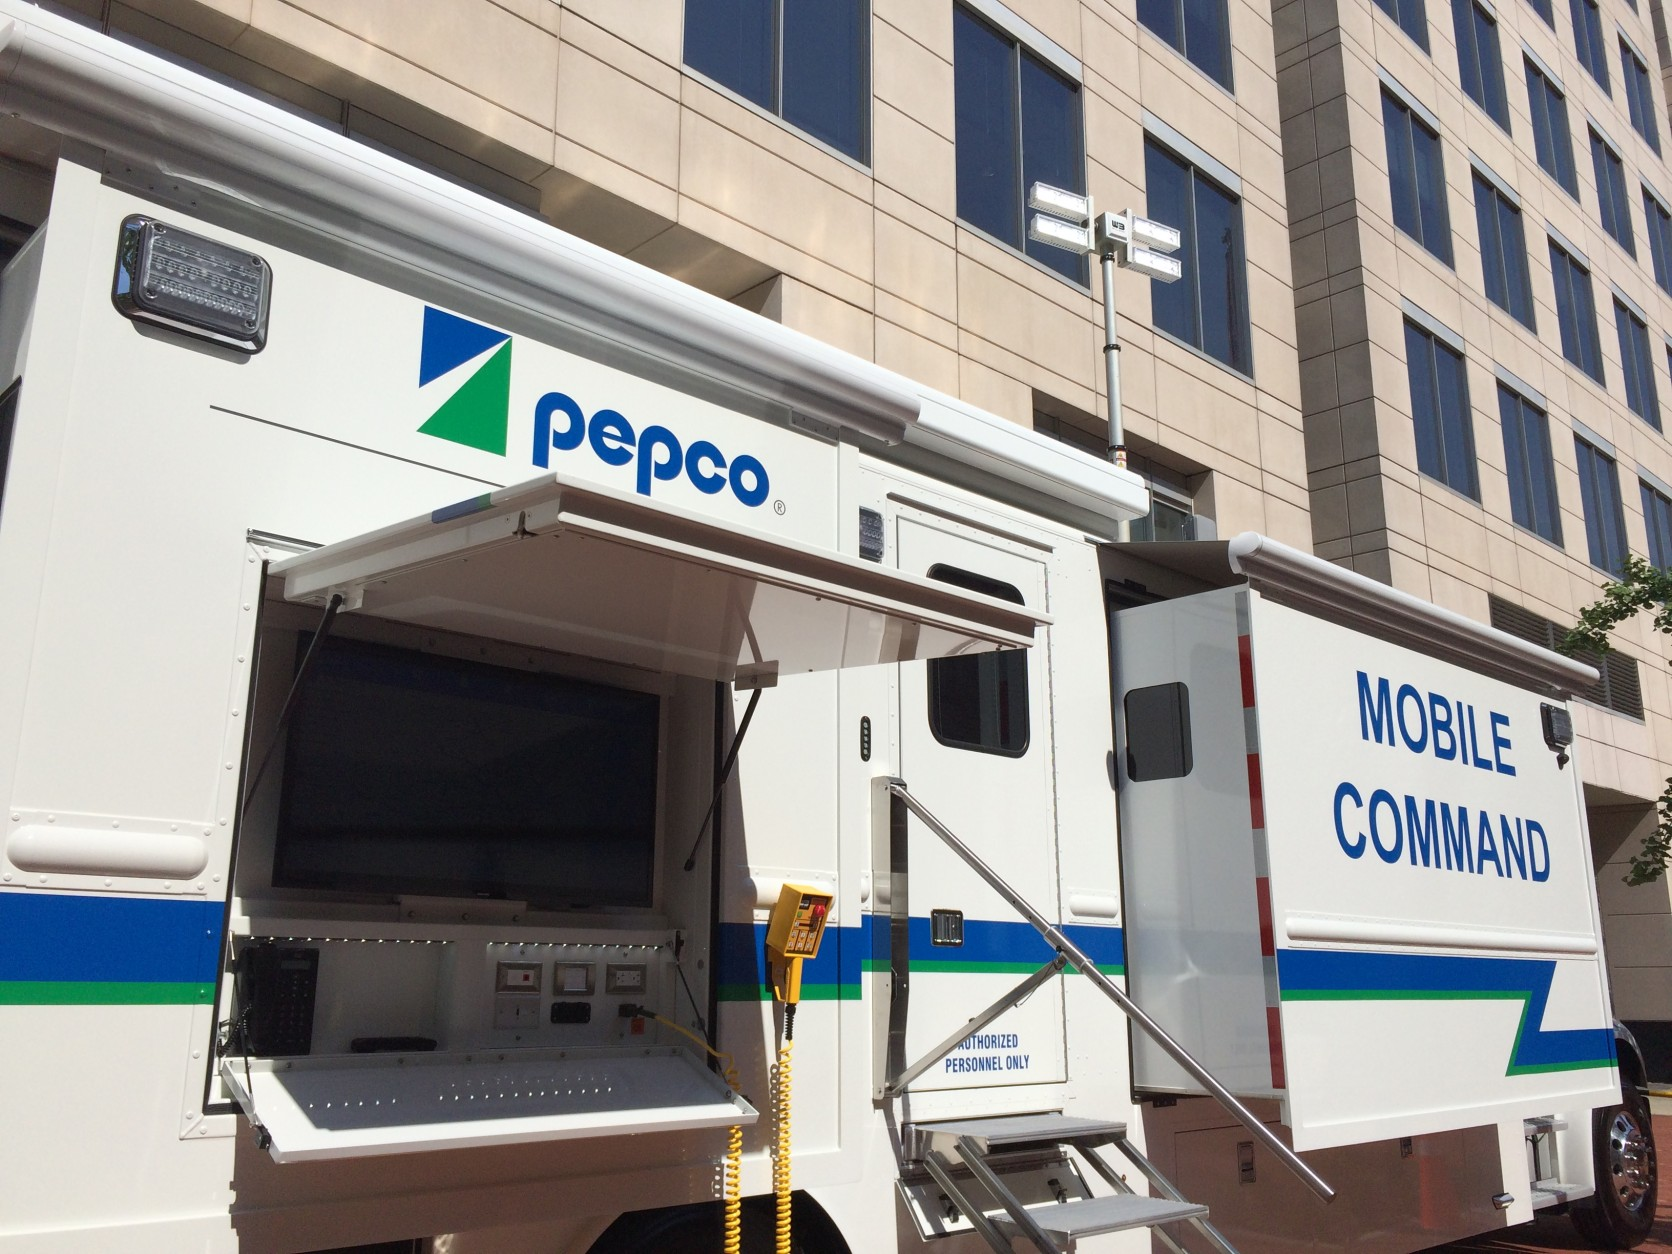 Pepco's massive new vehicle will help coordinate response to summer storms. (WTOP/Nick Iannelli)